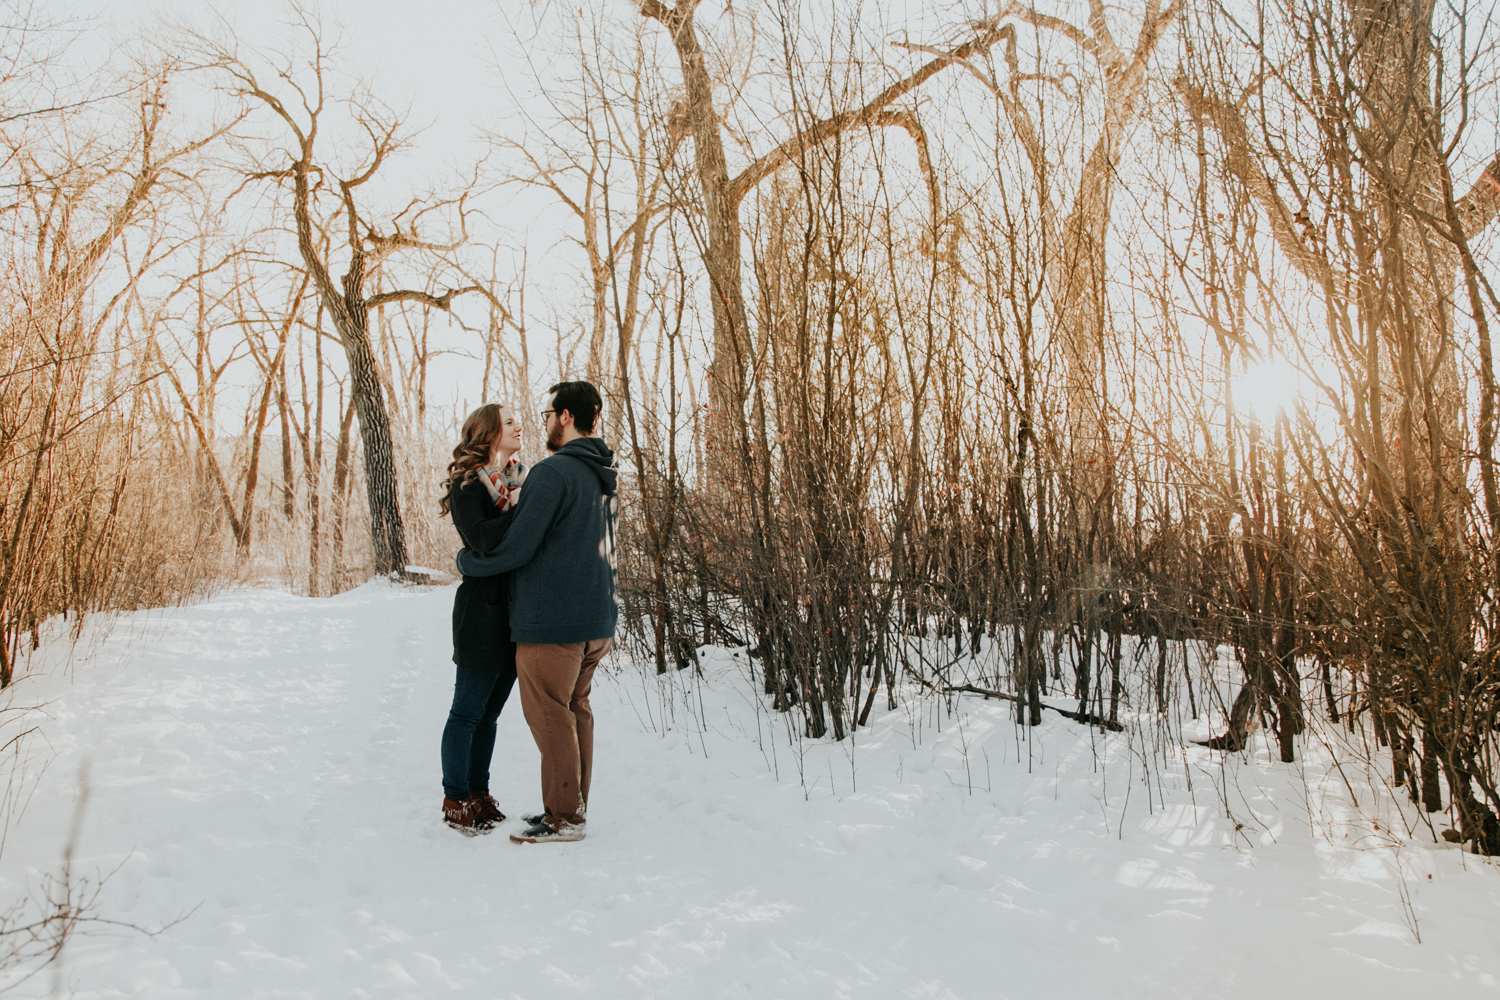 lethbridge-photography-love-and-be-loved-photographer-dan-tynnea-engagement-picture-image-photo-24.jpg